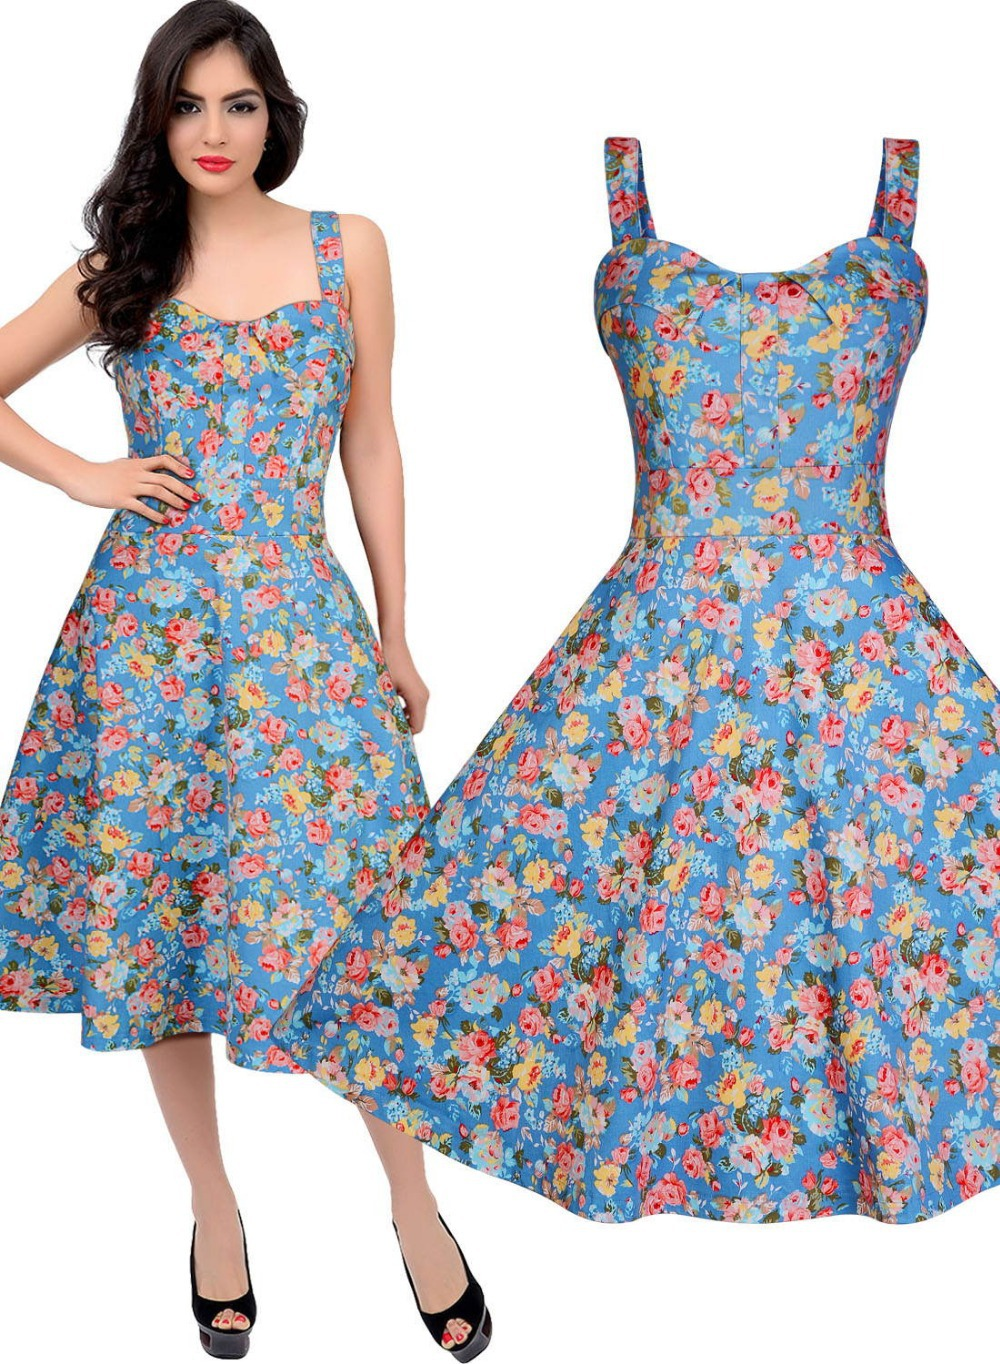 Free shipping Women\'s 1940s 1950s Vintage Style Rocabilly Floral ...